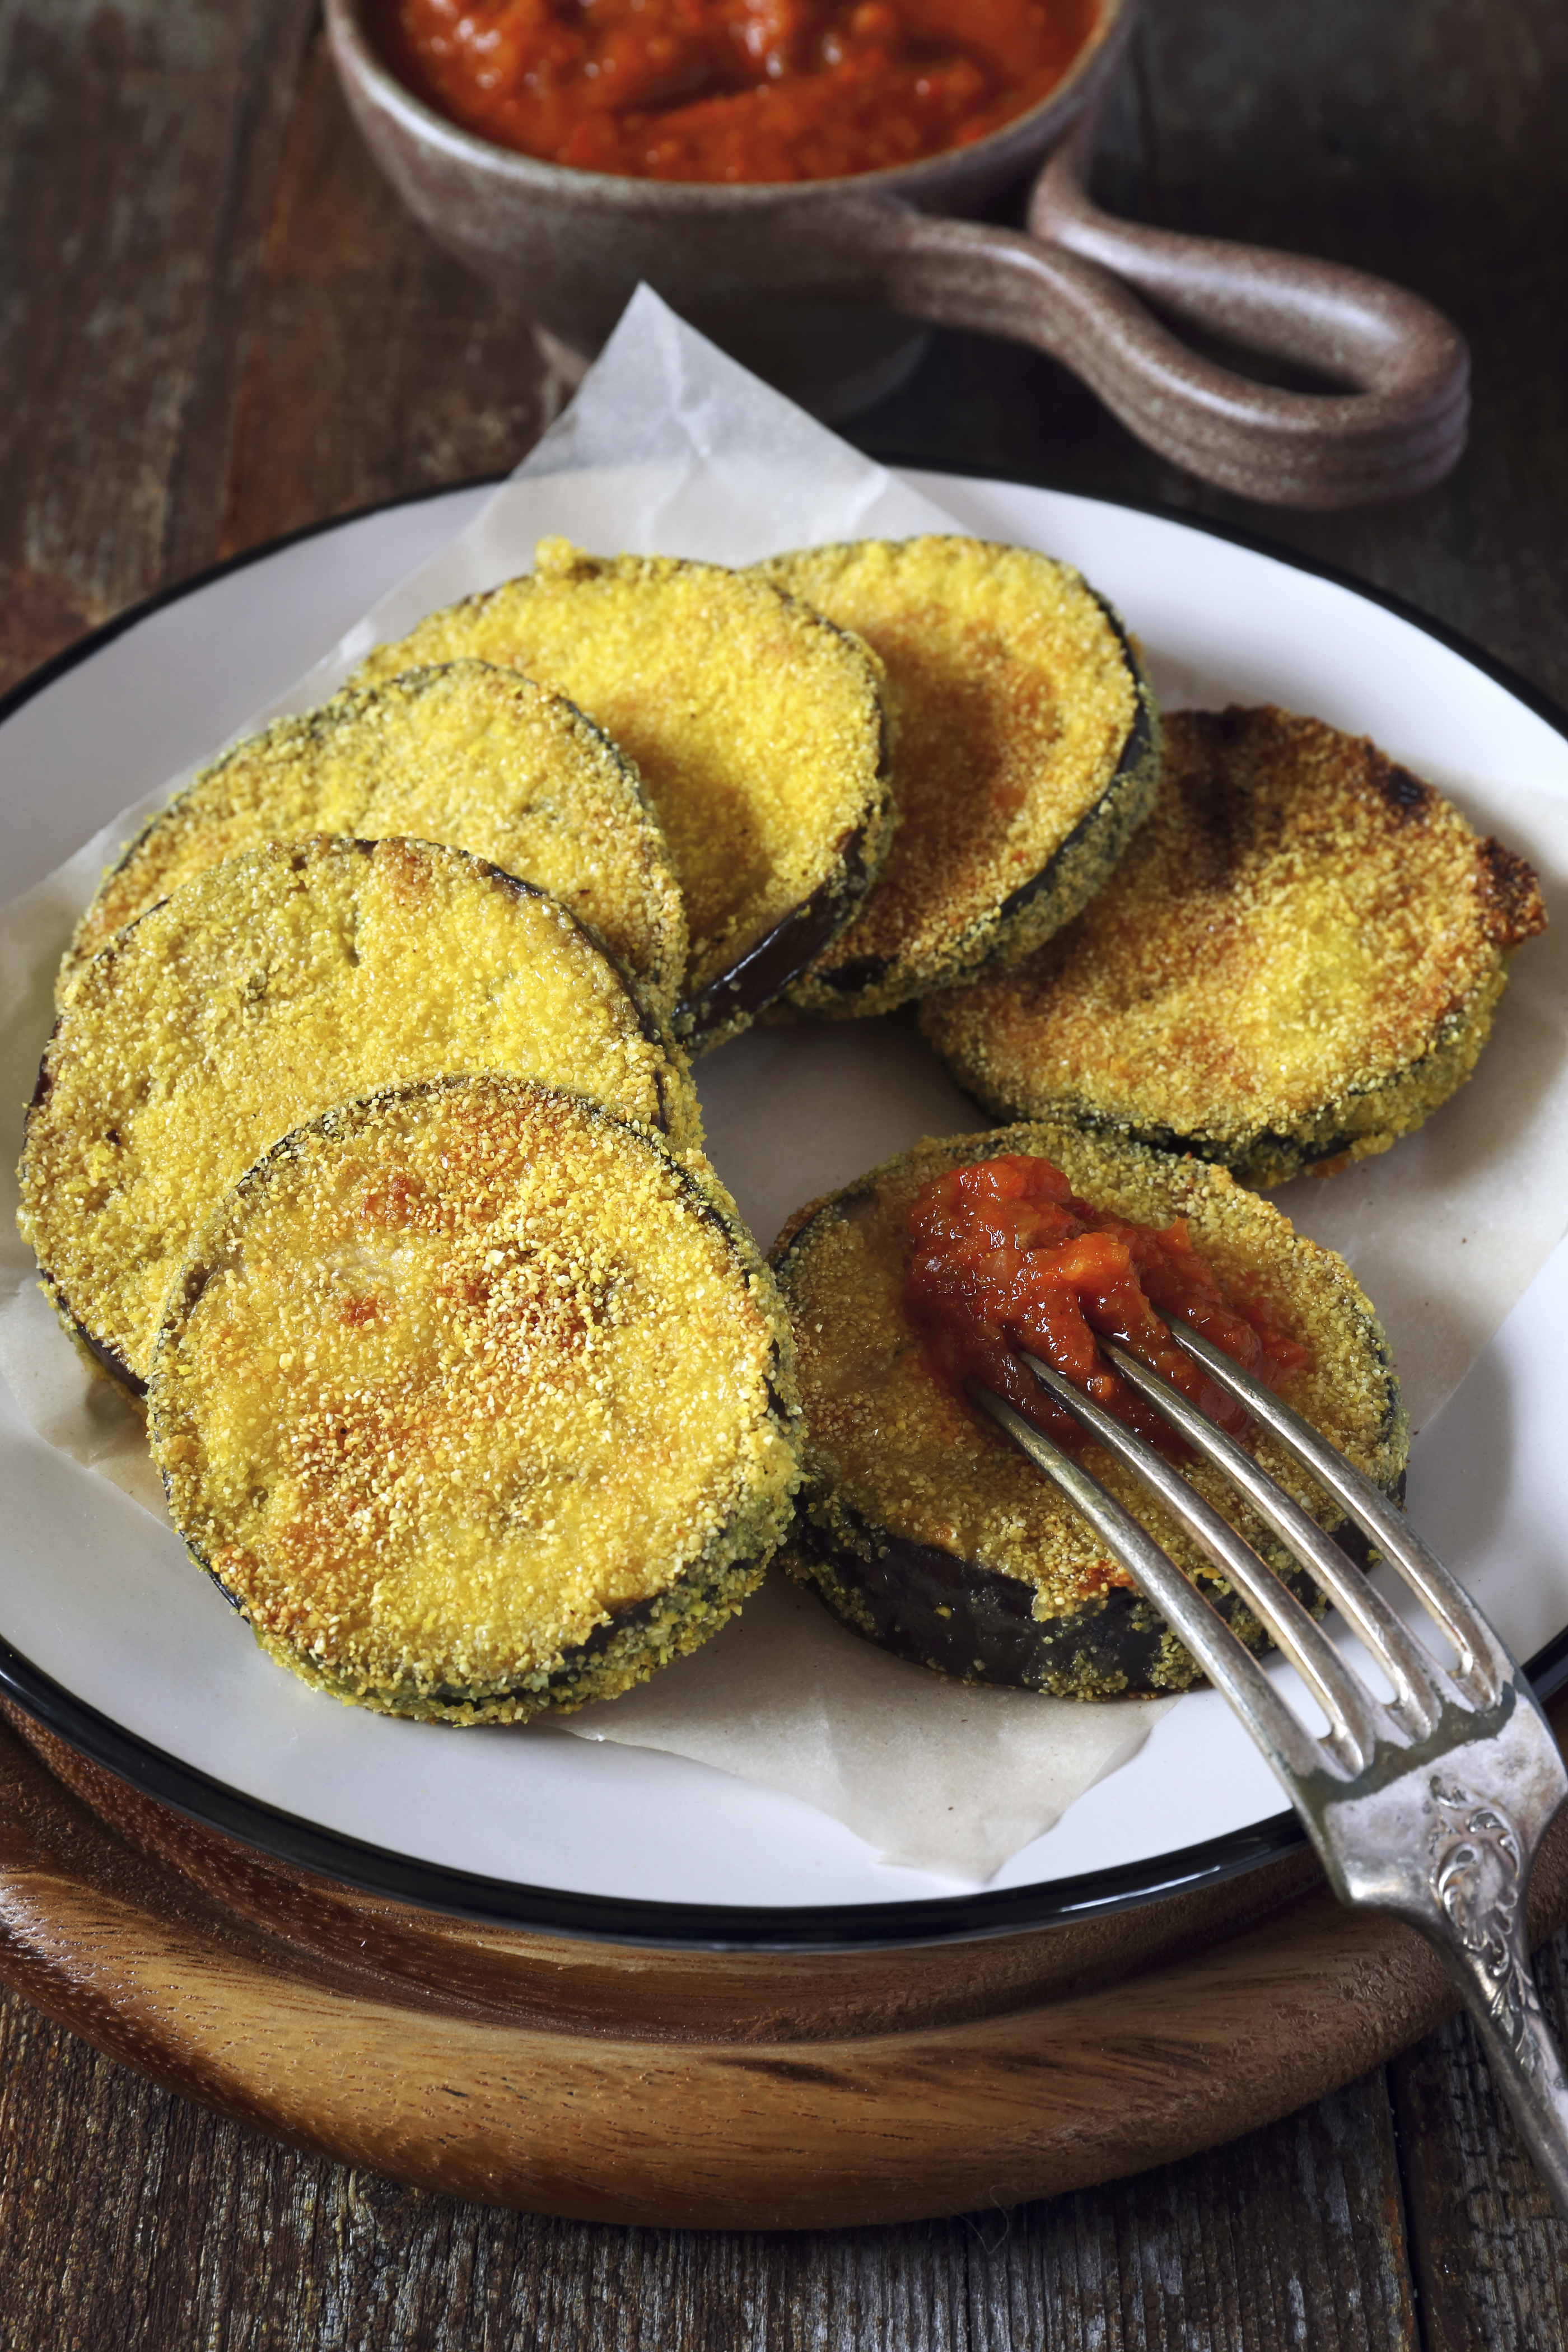 Fried breaded eggplant with tomato sauce